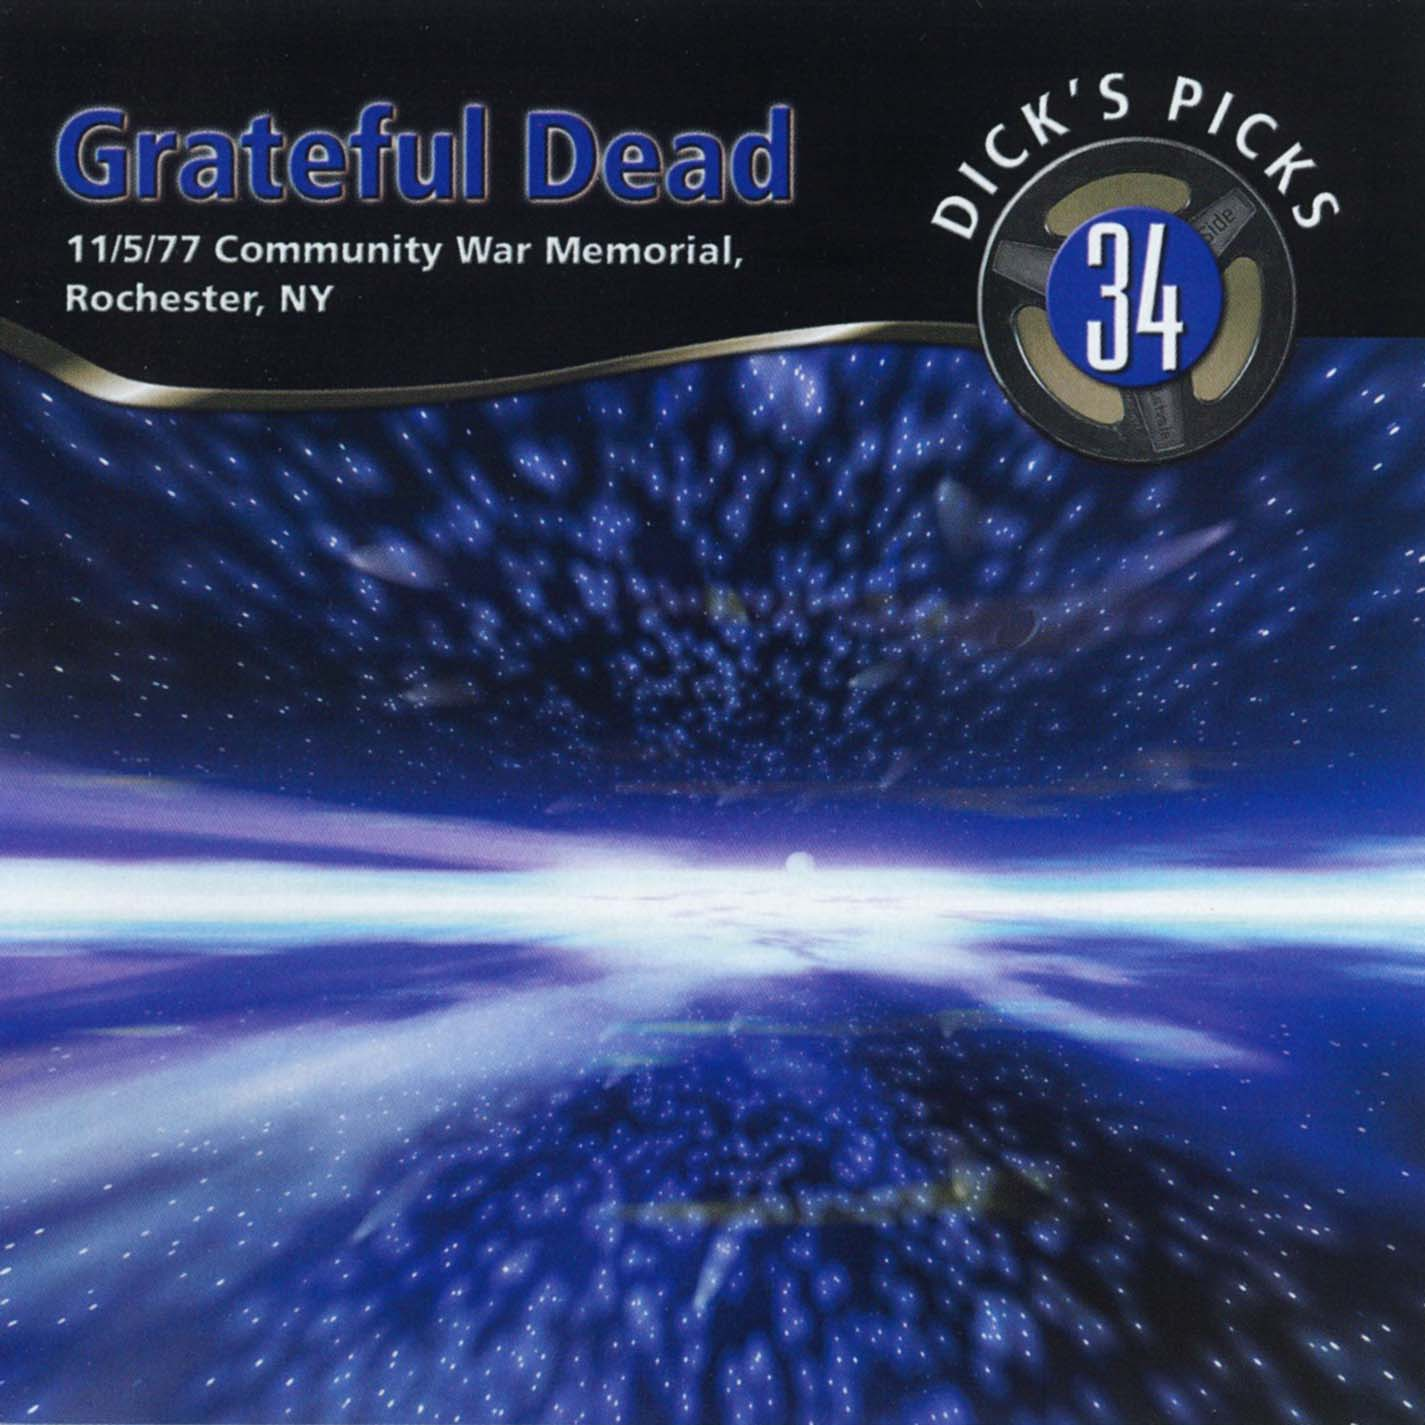 Grateful Dead Dick's Picks 34 album cover artwork